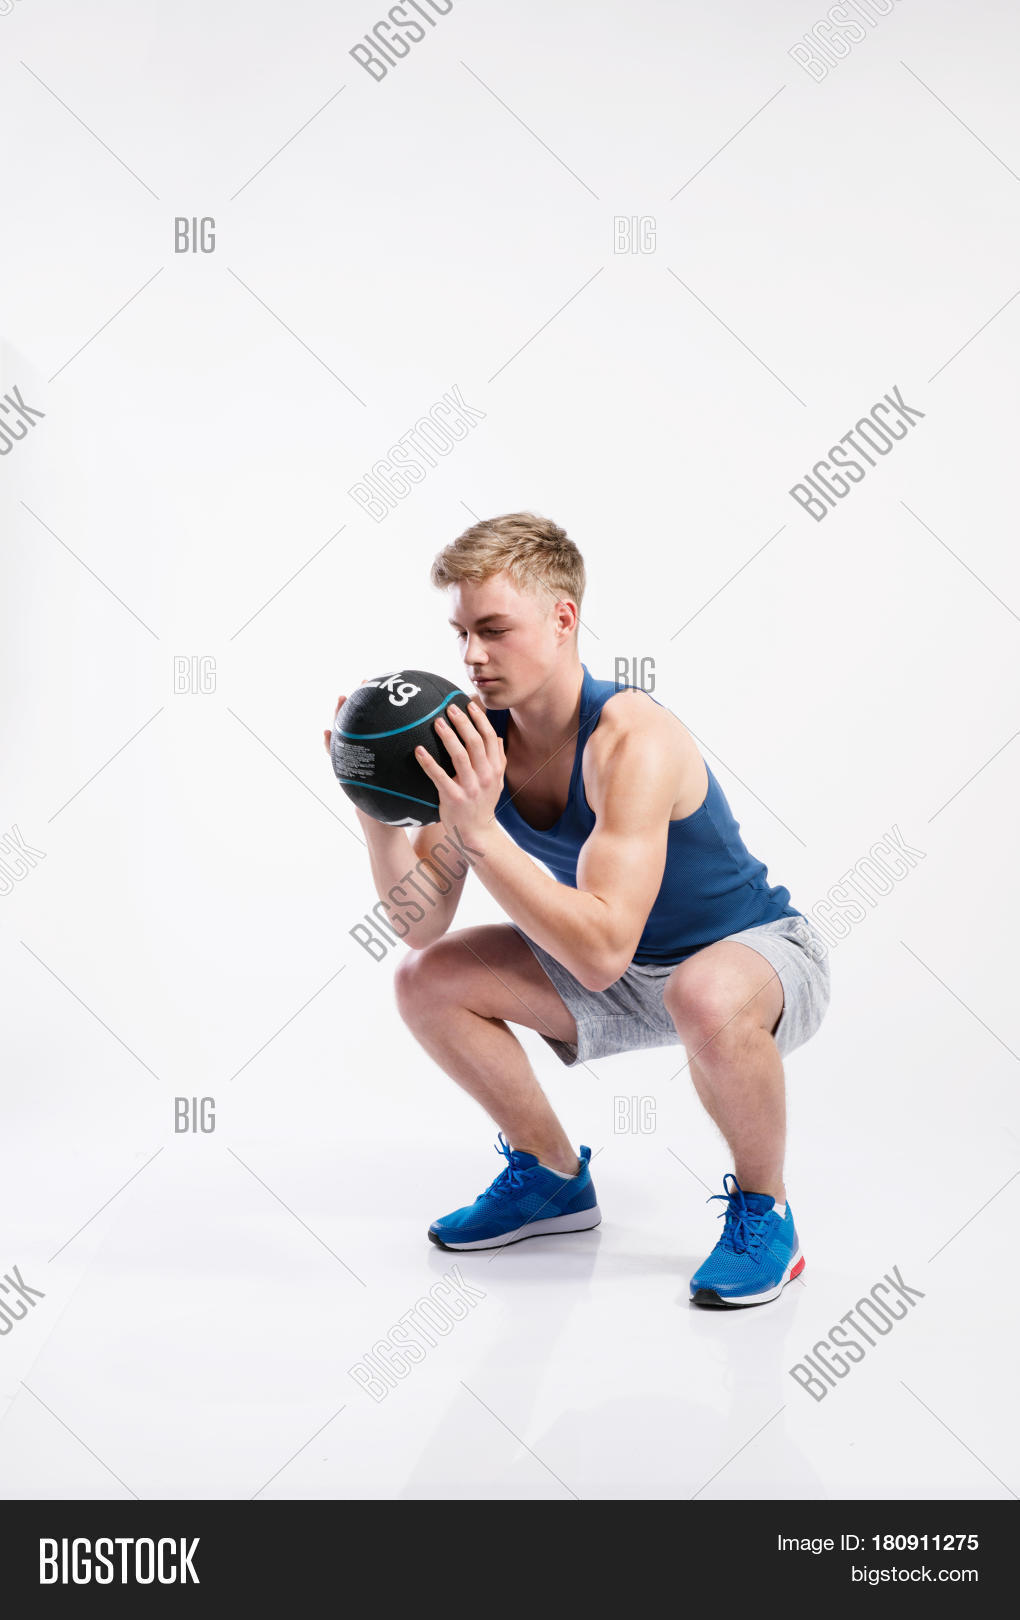 3e94f6600b678 Handsome hipster fitness man in blue tank top shirt and gray shorts holding  medicene ball